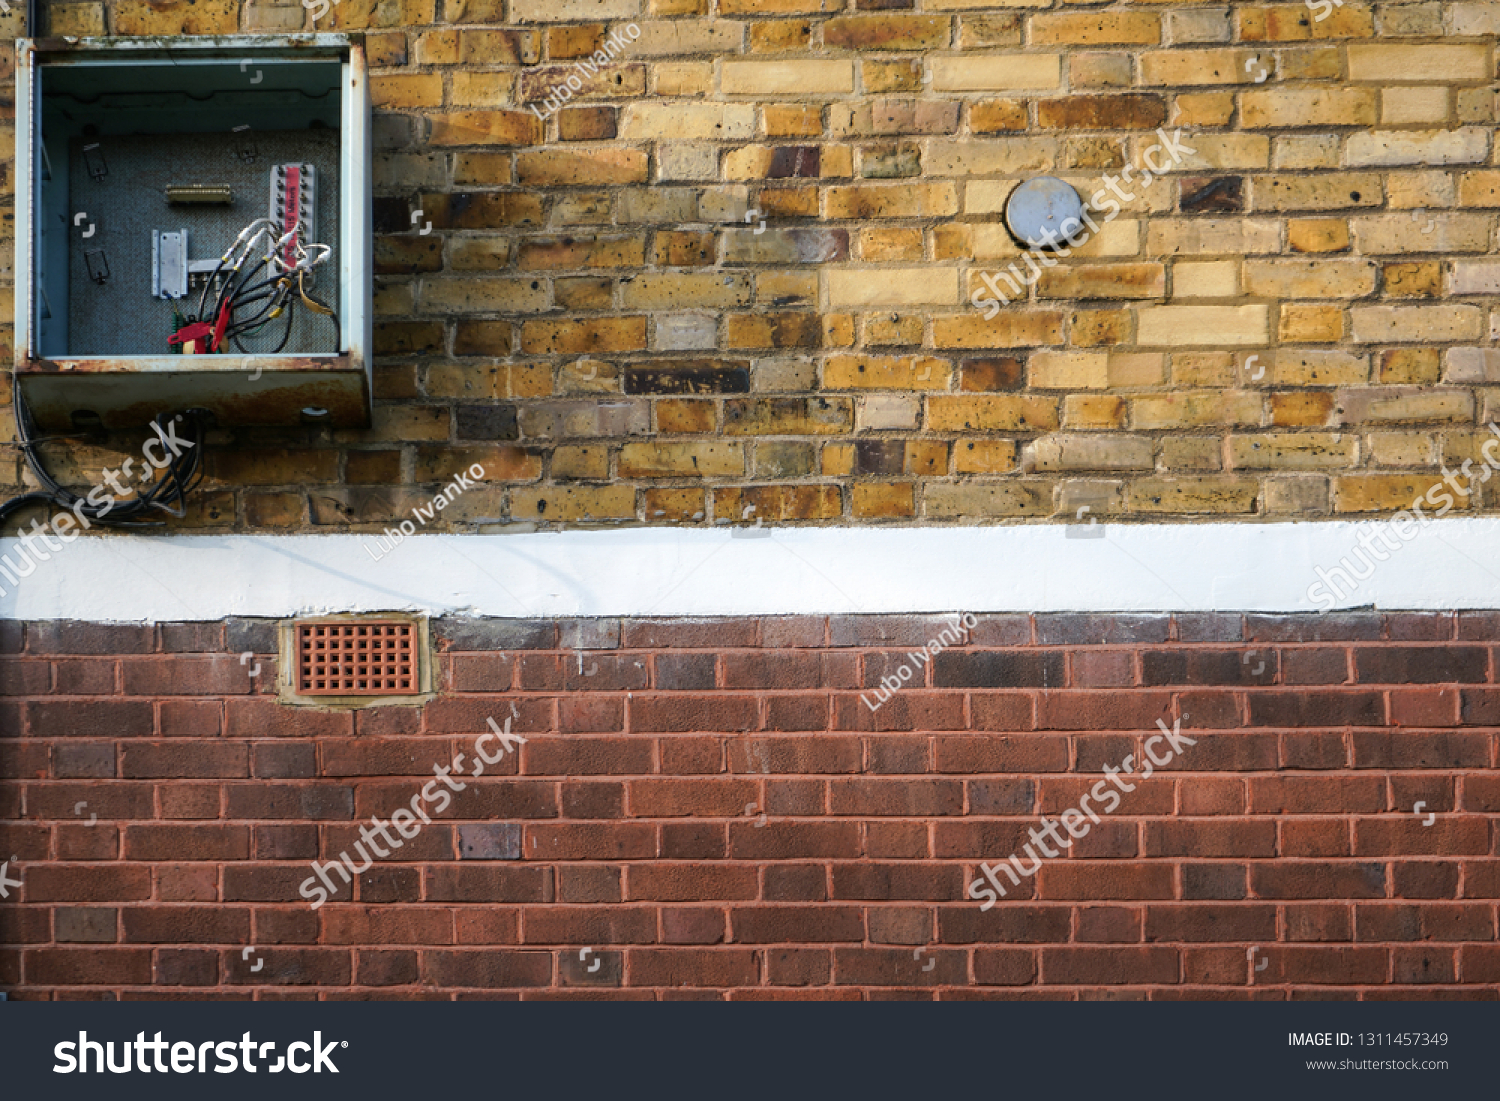 bricks wall, with electricity fuse box on it, opened, cover missing, cables